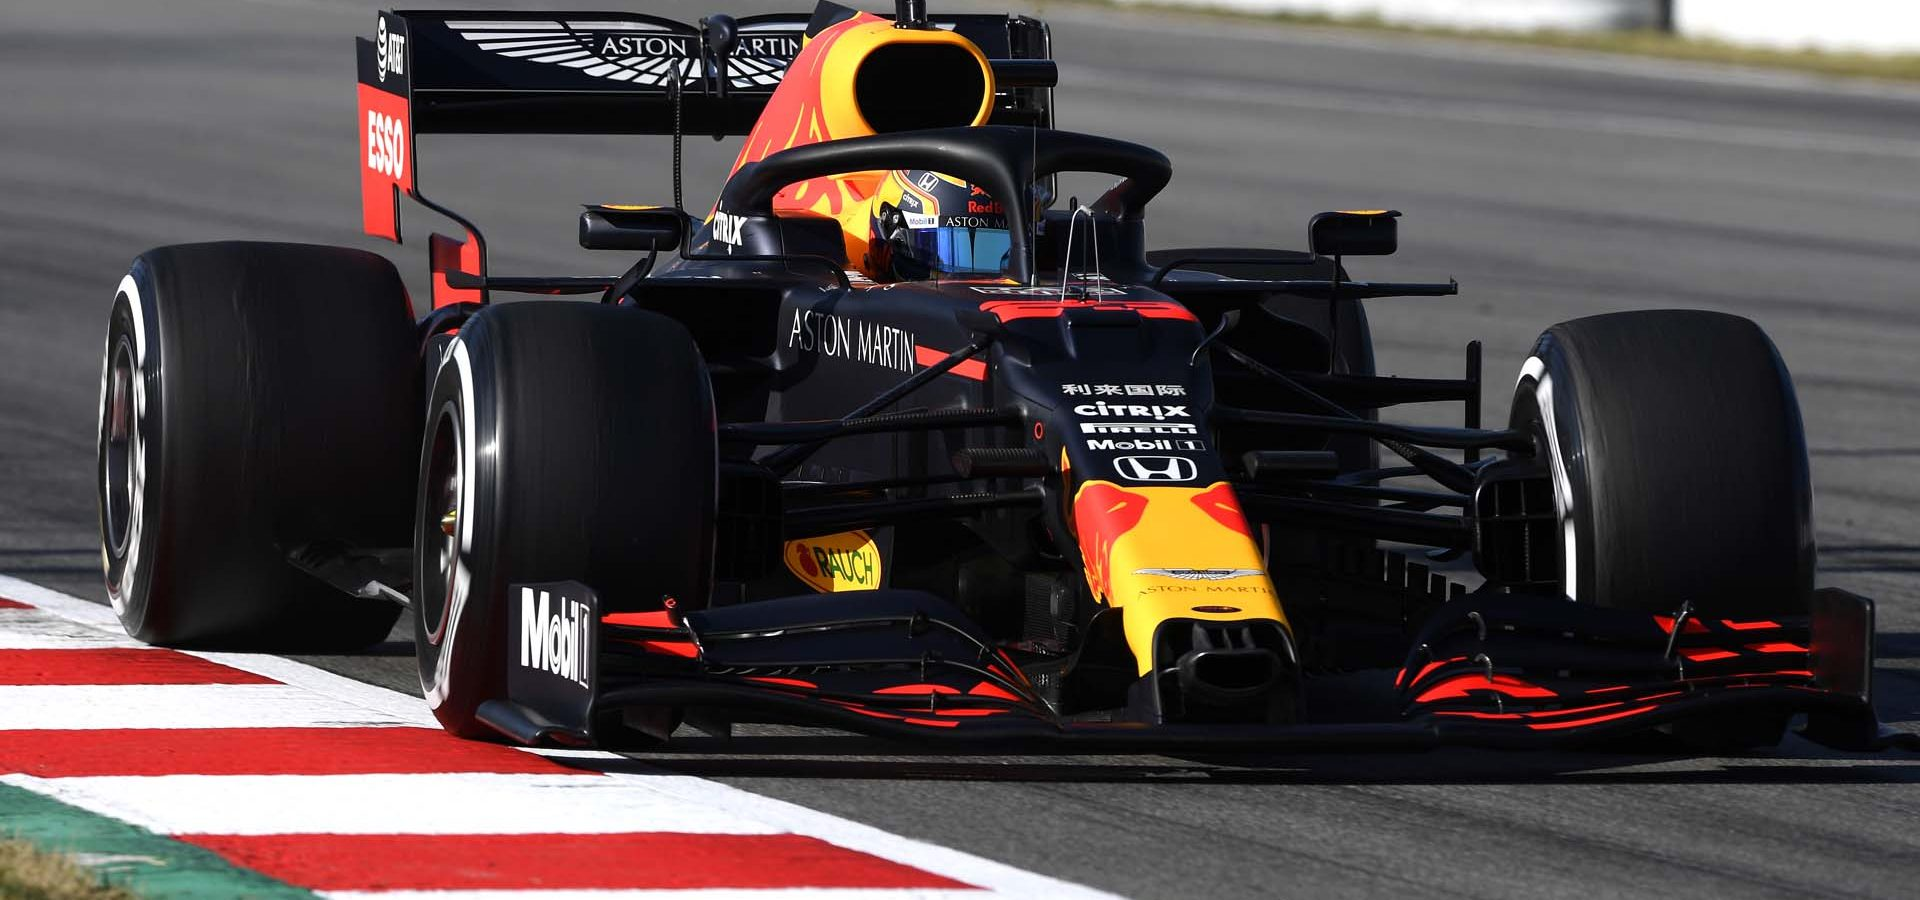 BARCELONA, SPAIN - FEBRUARY 20: Alexander Albon of Thailand driving the (23) Aston Martin Red Bull Racing RB16 on track during day two of F1 Winter Testing at Circuit de Barcelona-Catalunya on February 20, 2020 in Barcelona, Spain. (Photo by Rudy Carezzevoli/Getty Images) // Getty Images / Red Bull Content Pool  // AP-235X3VU2W2111 // Usage for editorial use only //